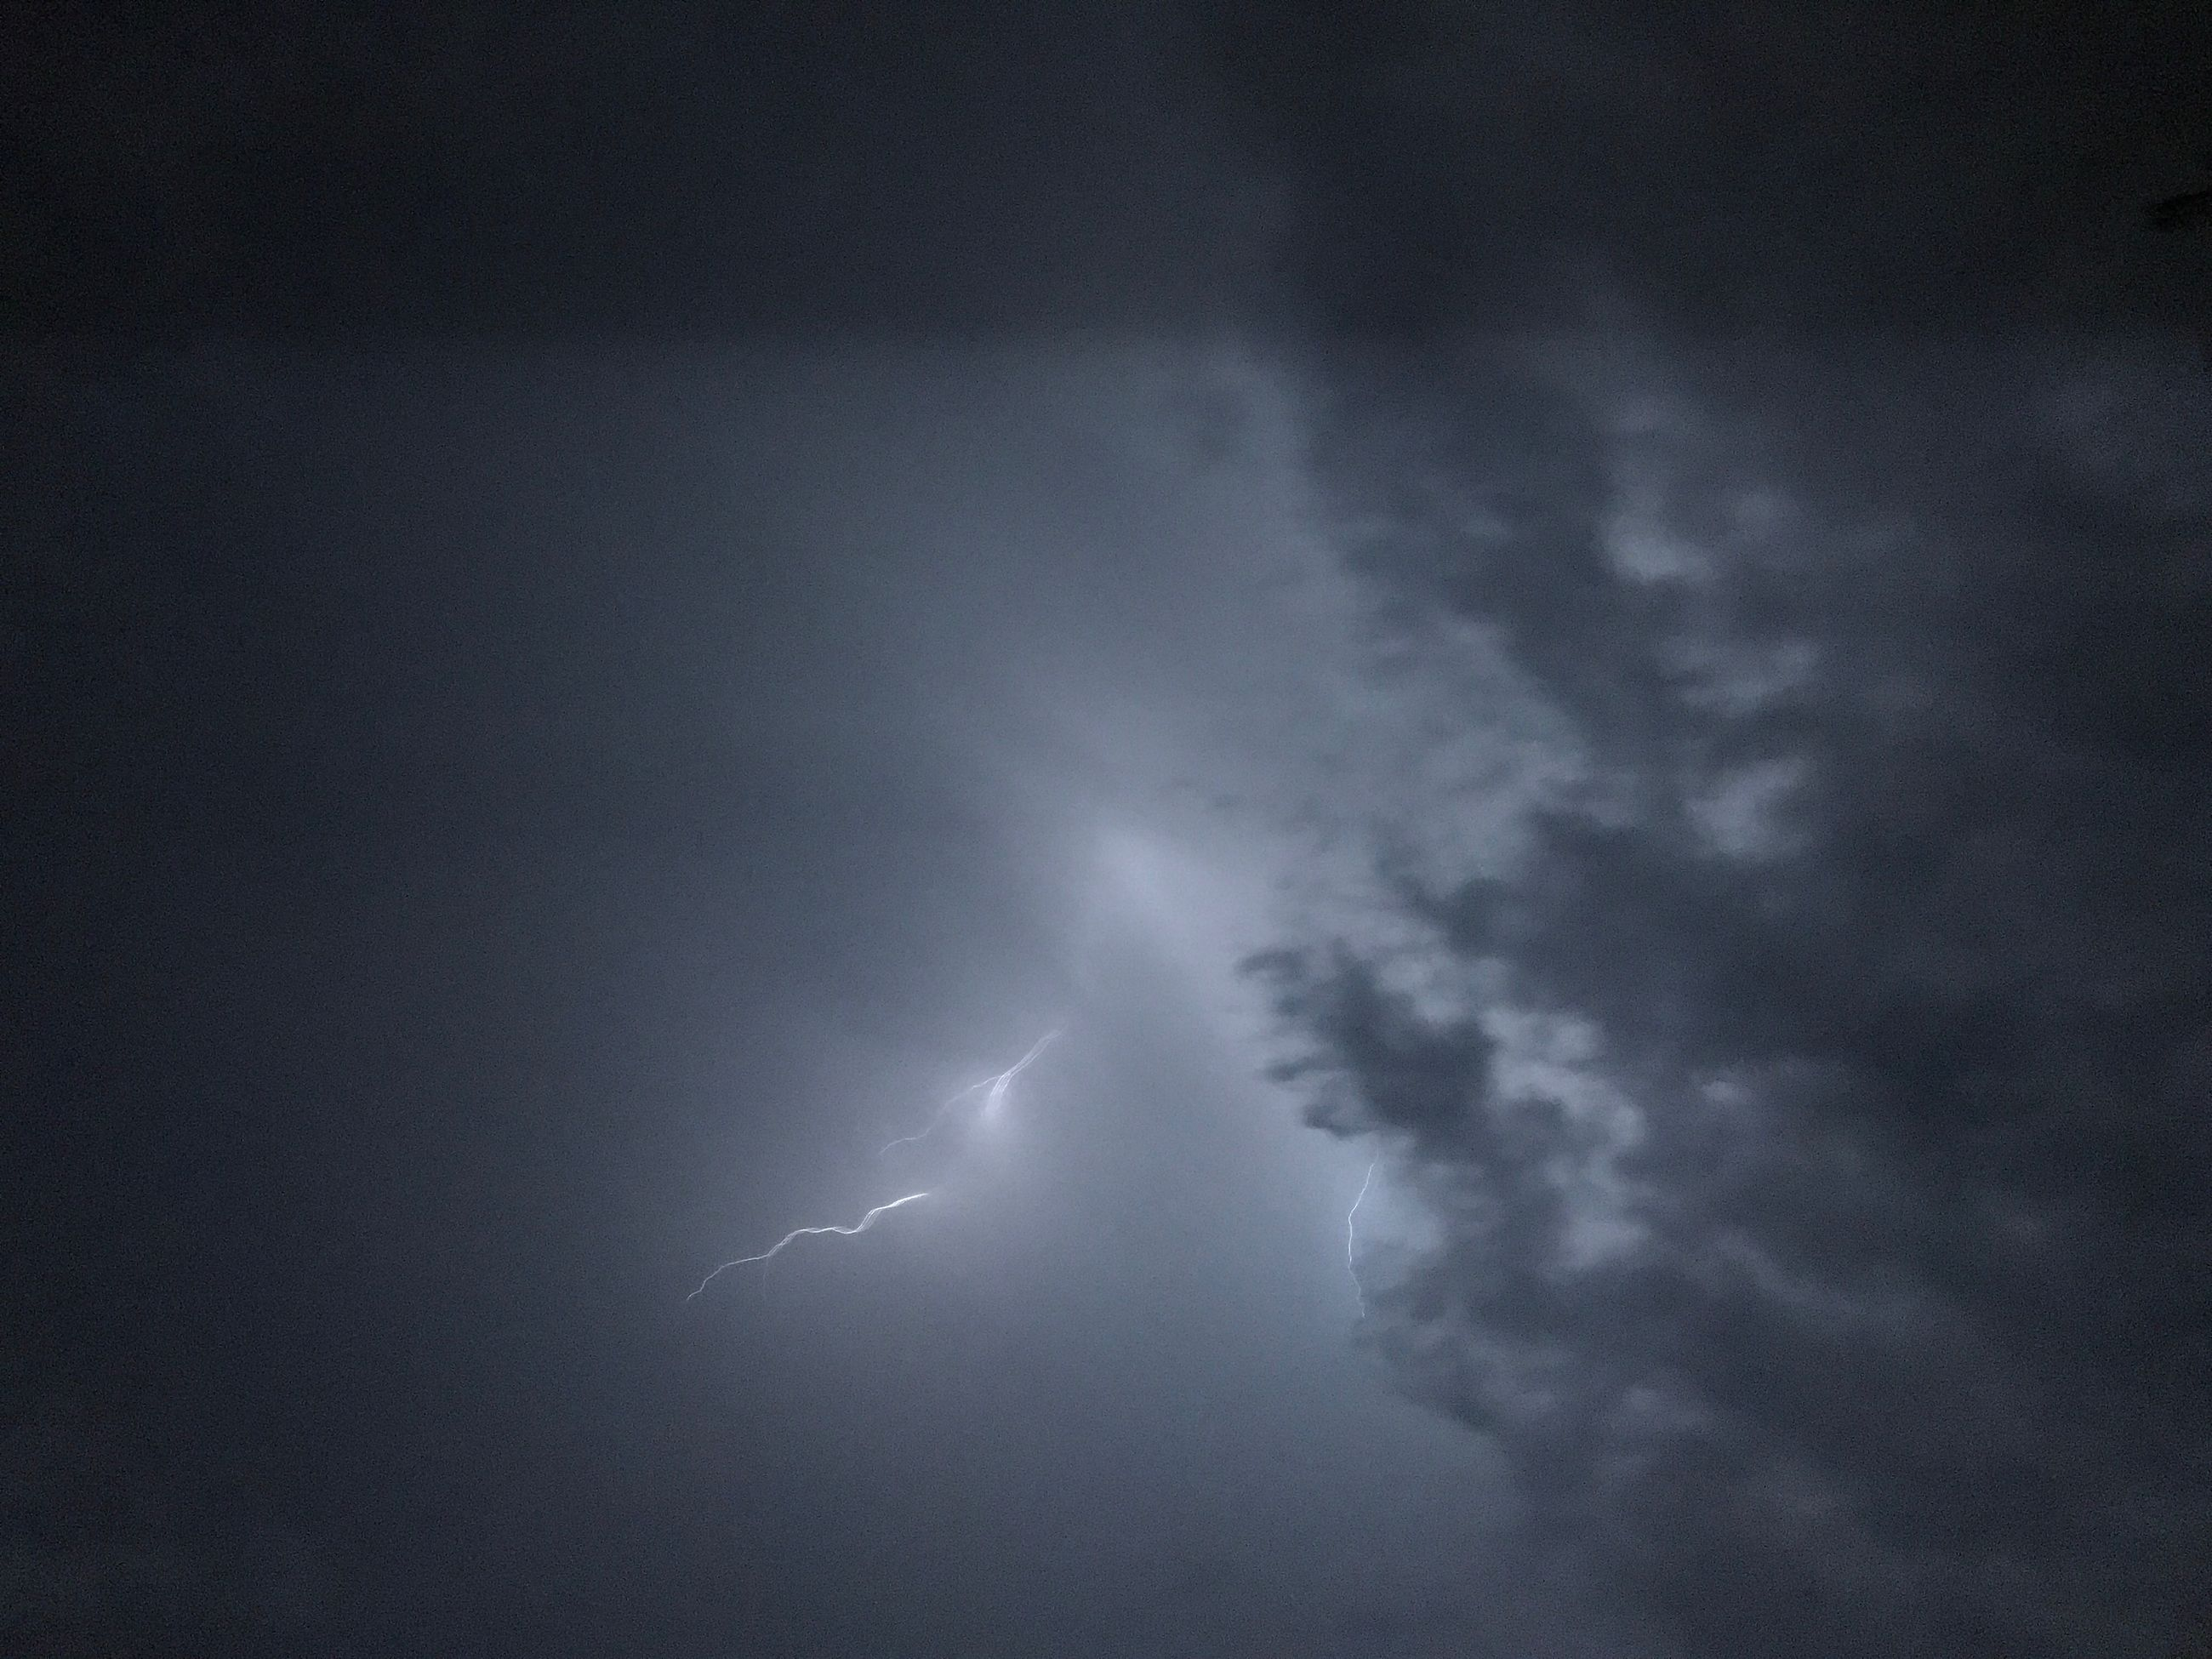 lightning, weather, power in nature, beauty in nature, storm, sky, thunderstorm, storm cloud, nature, forked lightning, dramatic sky, cloud - sky, atmospheric mood, scenics, danger, silhouette, no people, outdoors, natural phenomenon, night, low angle view